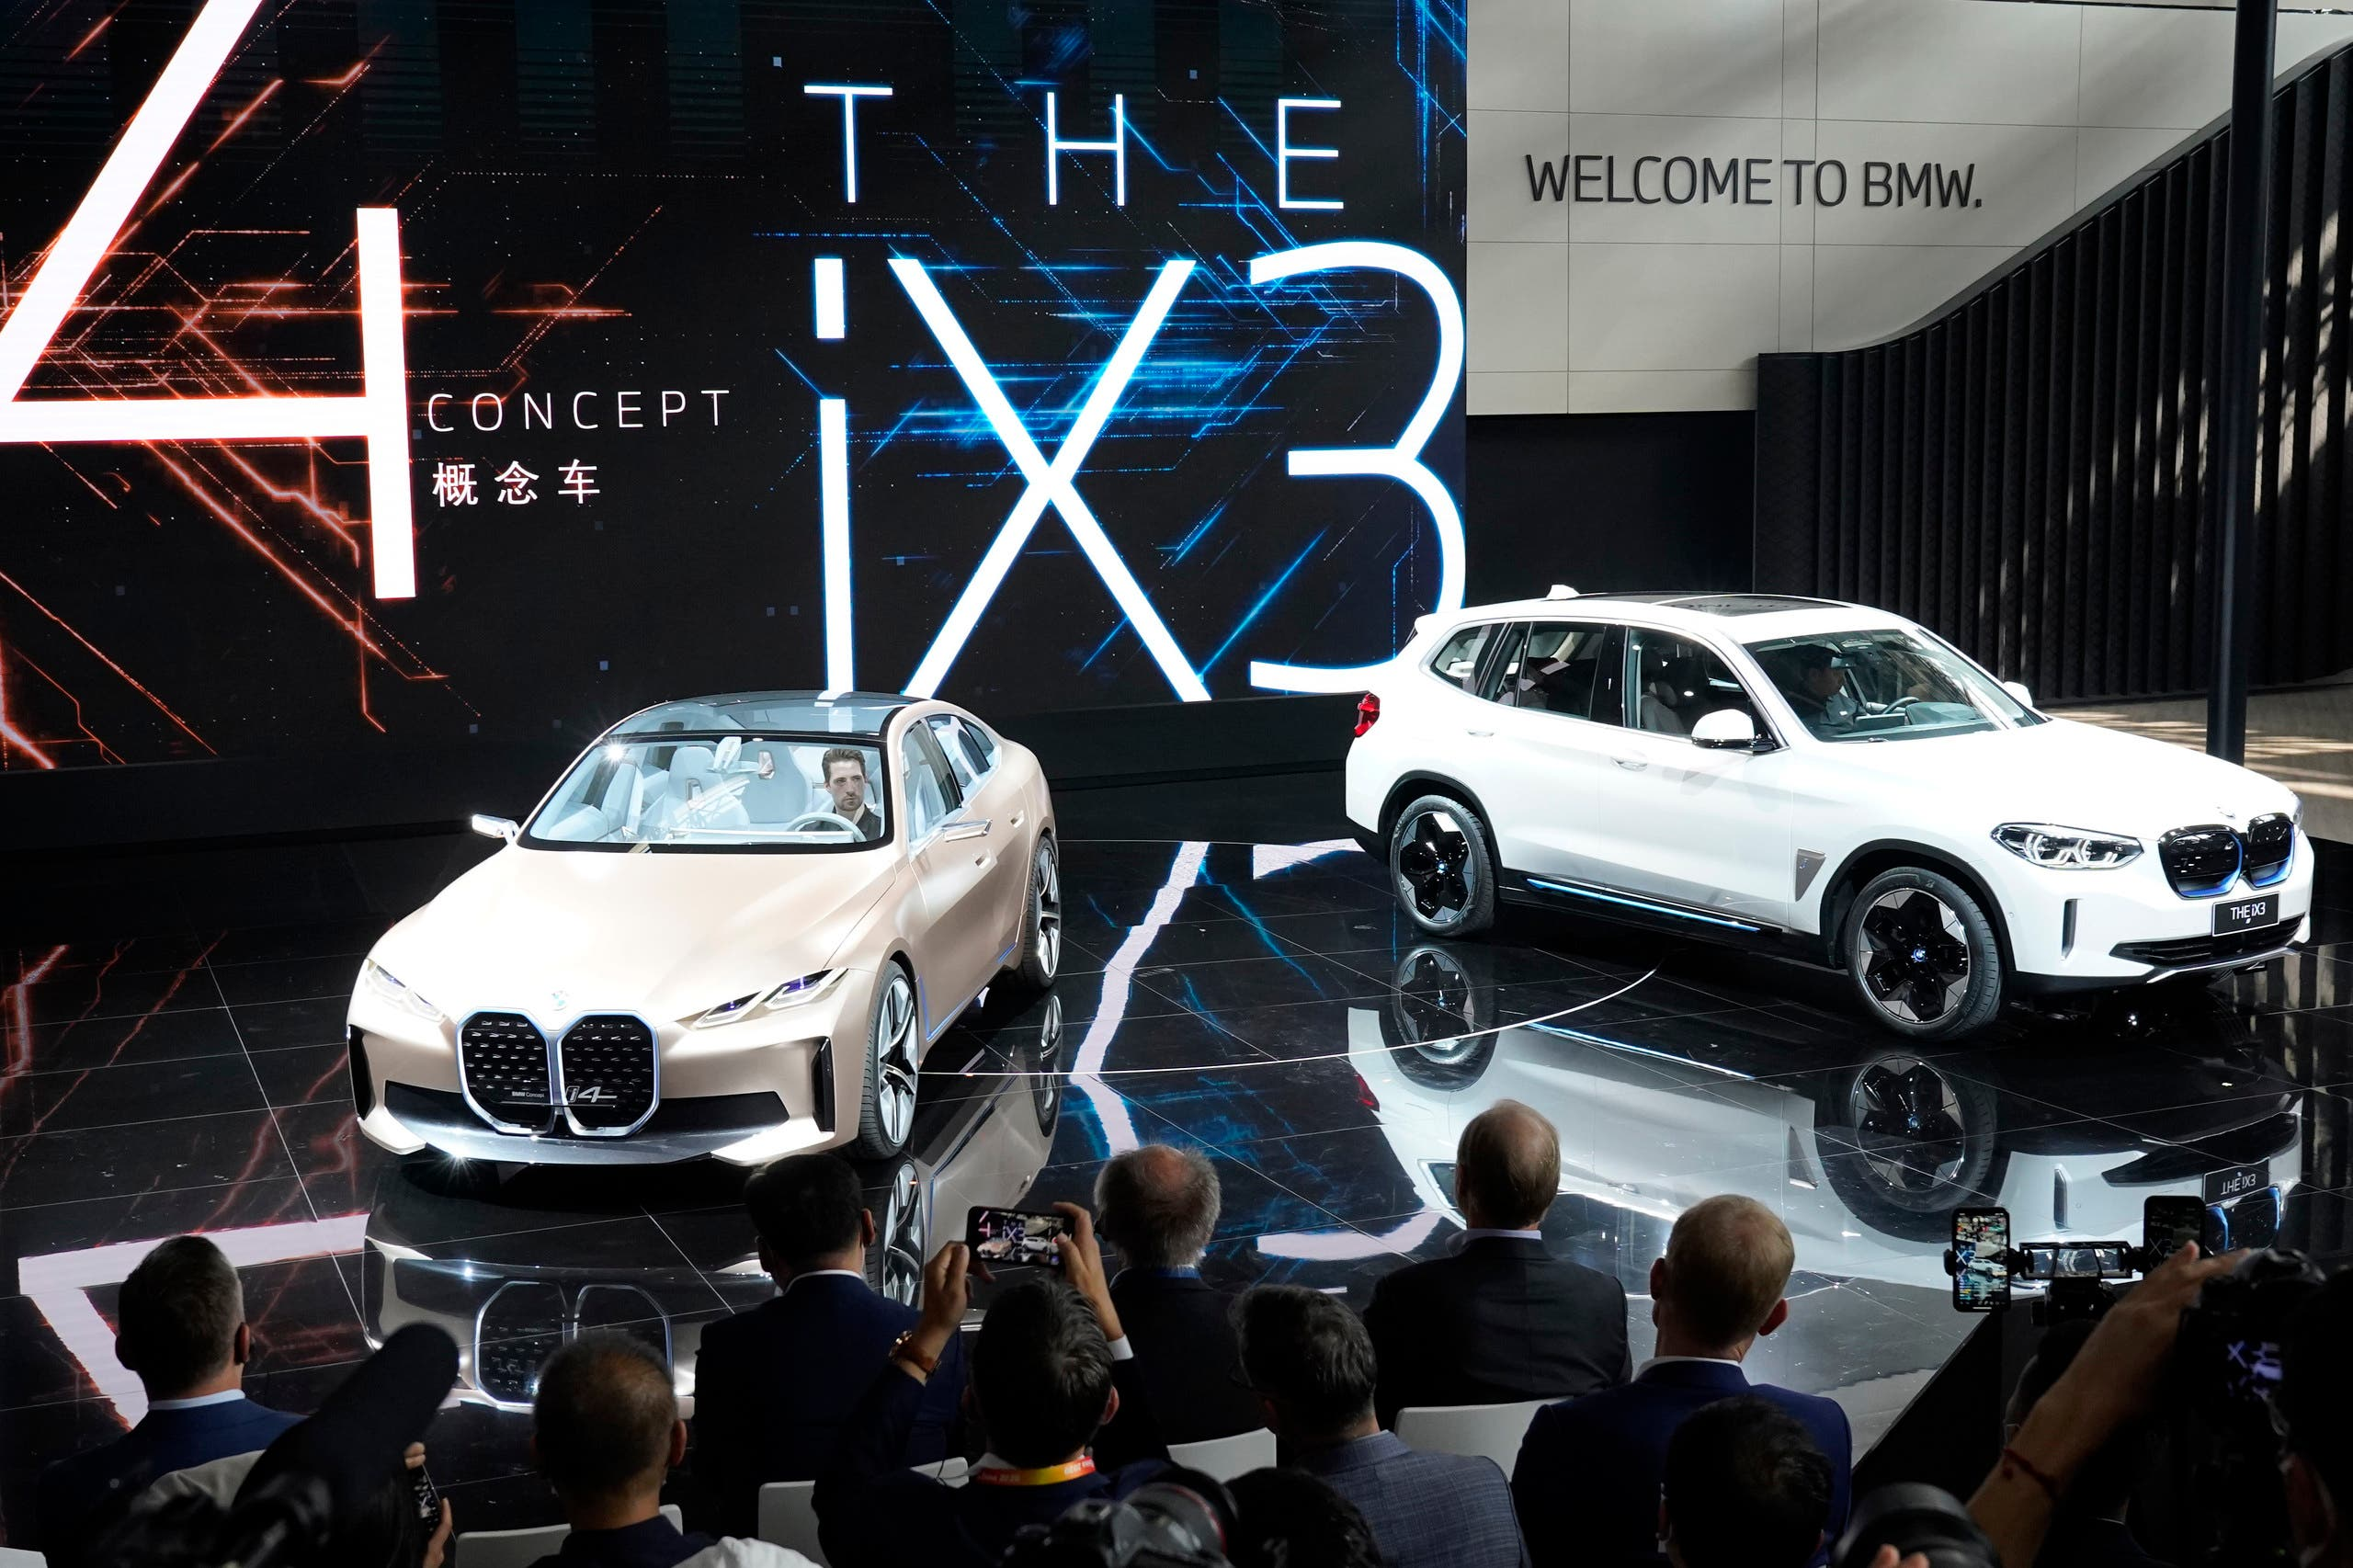 BMW displays its i4 concept car and iX3 electric SUV during the Auto China 2020 show in Beijing on Saturday, Sept. 26, 2020. (AP)